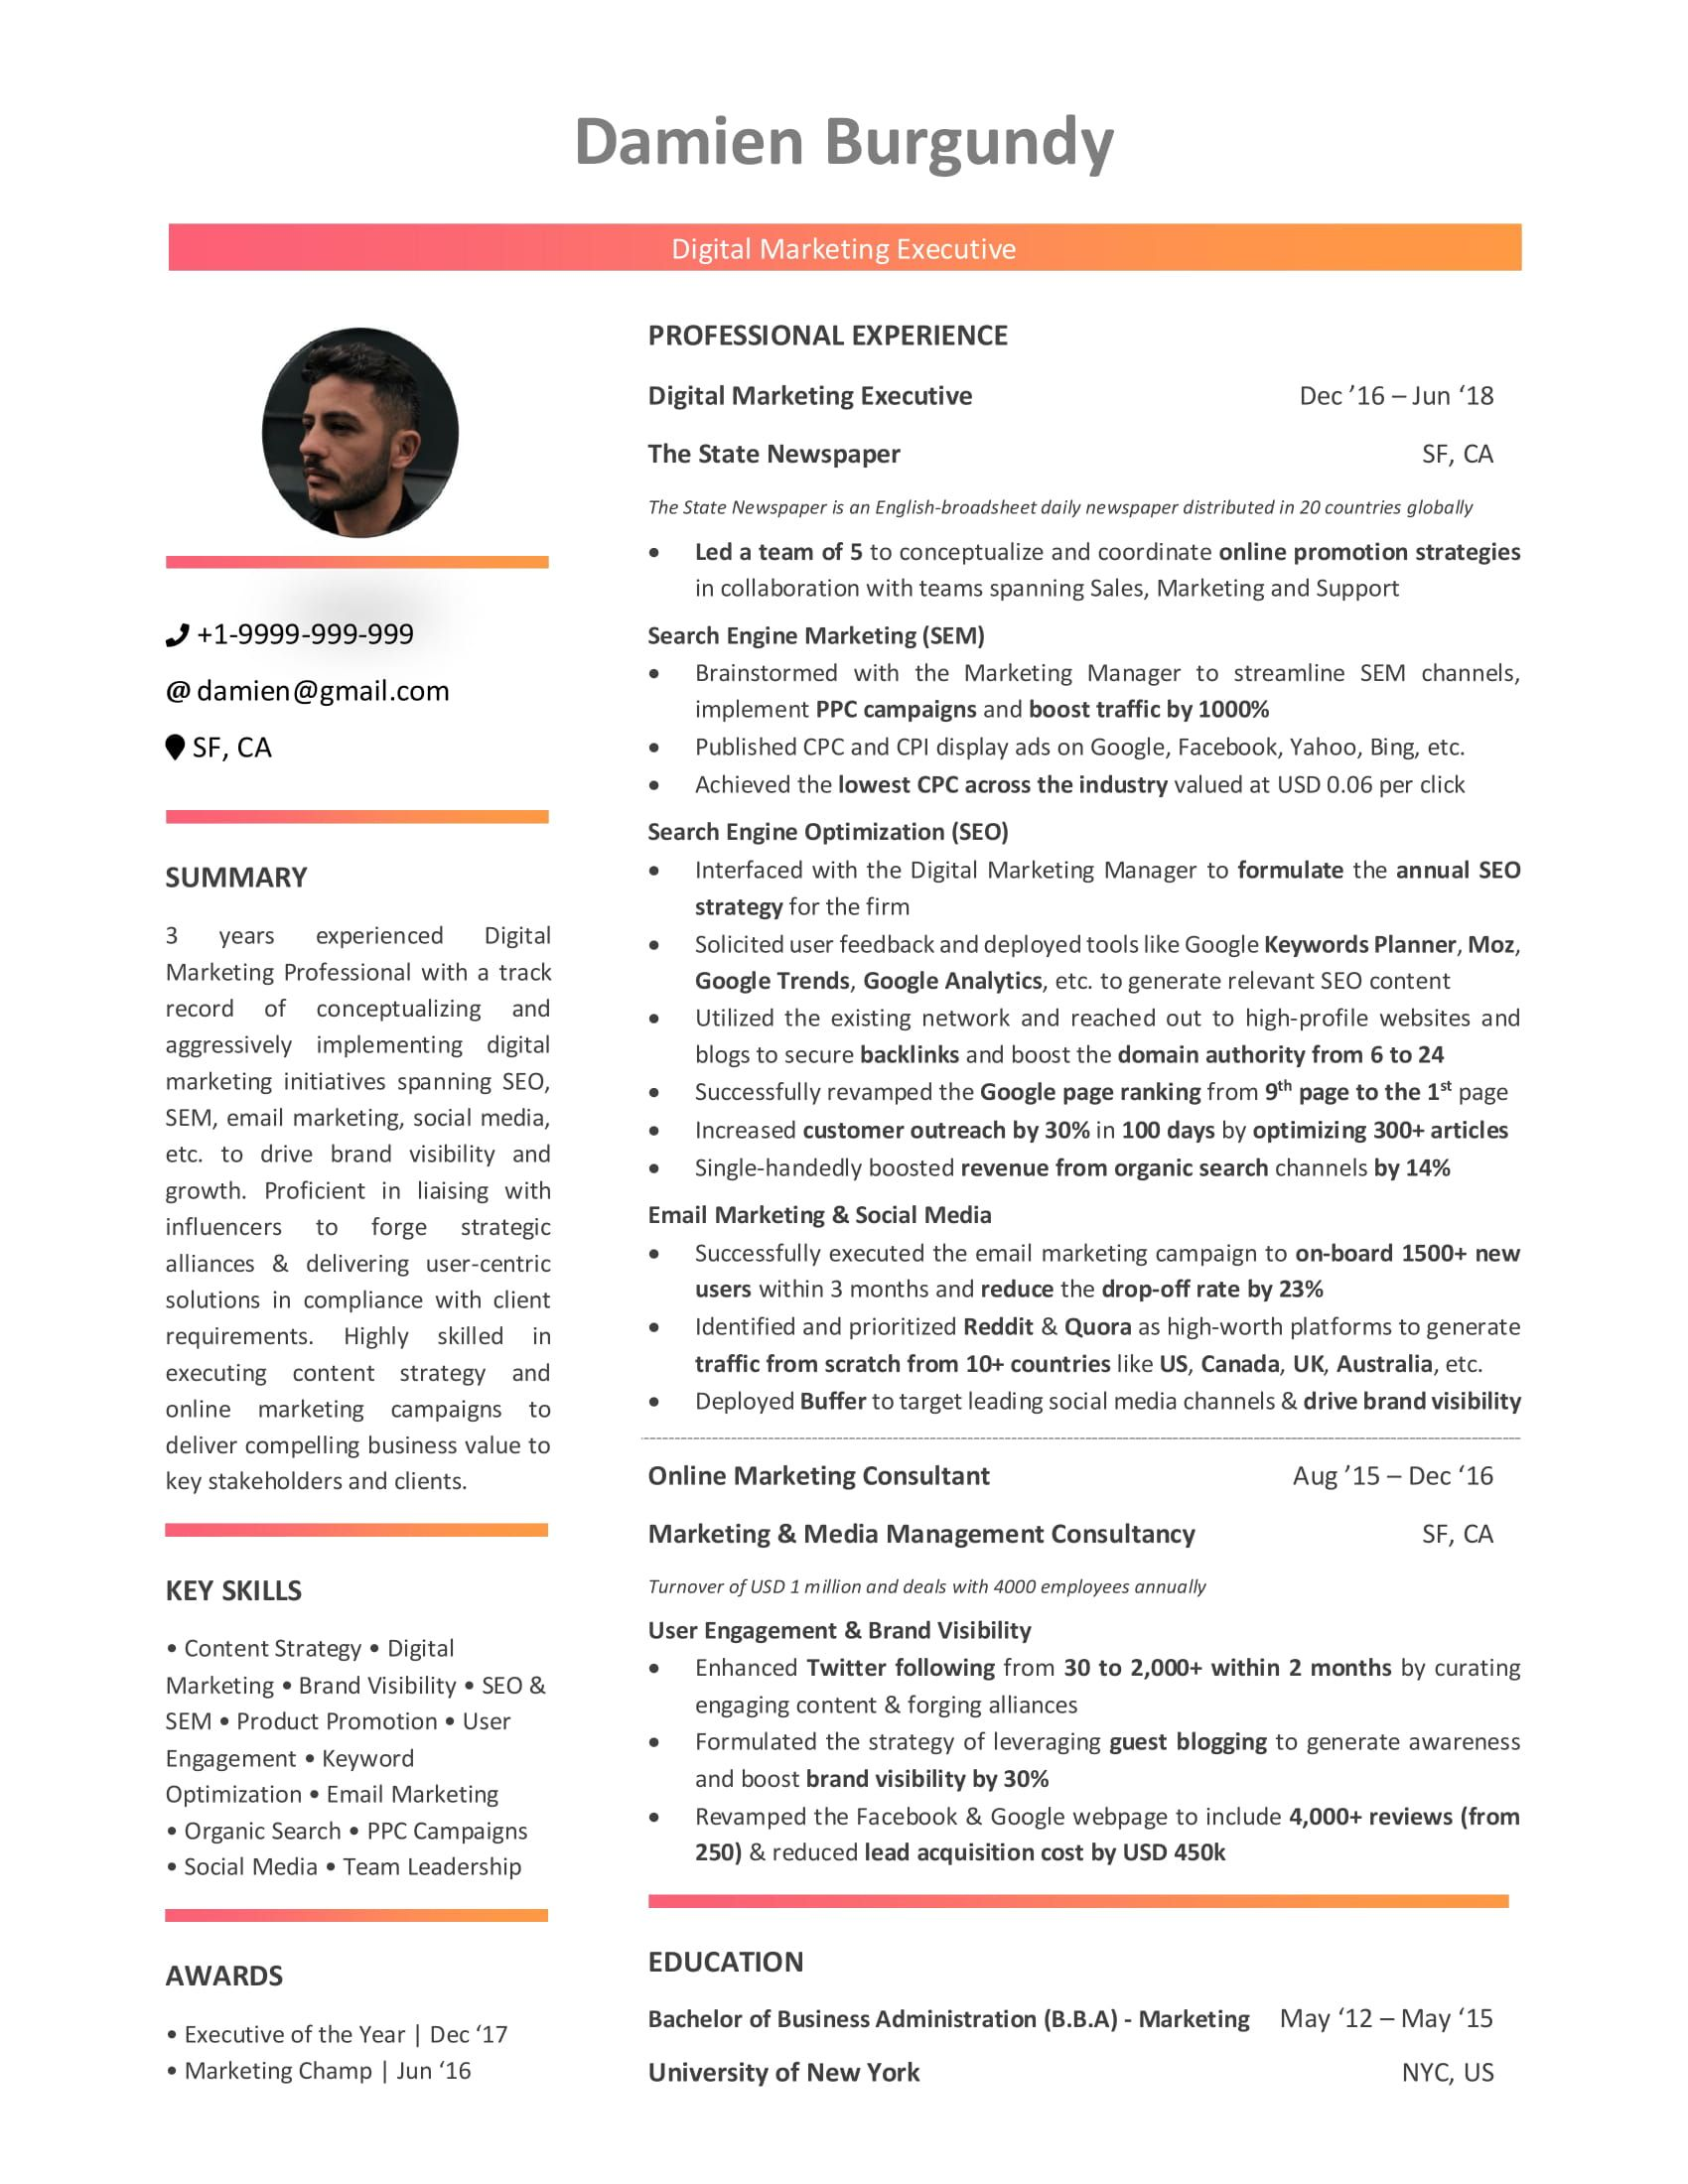 digital marketing resume step beginner guide with examples profile trade executive doing Resume Digital Marketing Profile Resume